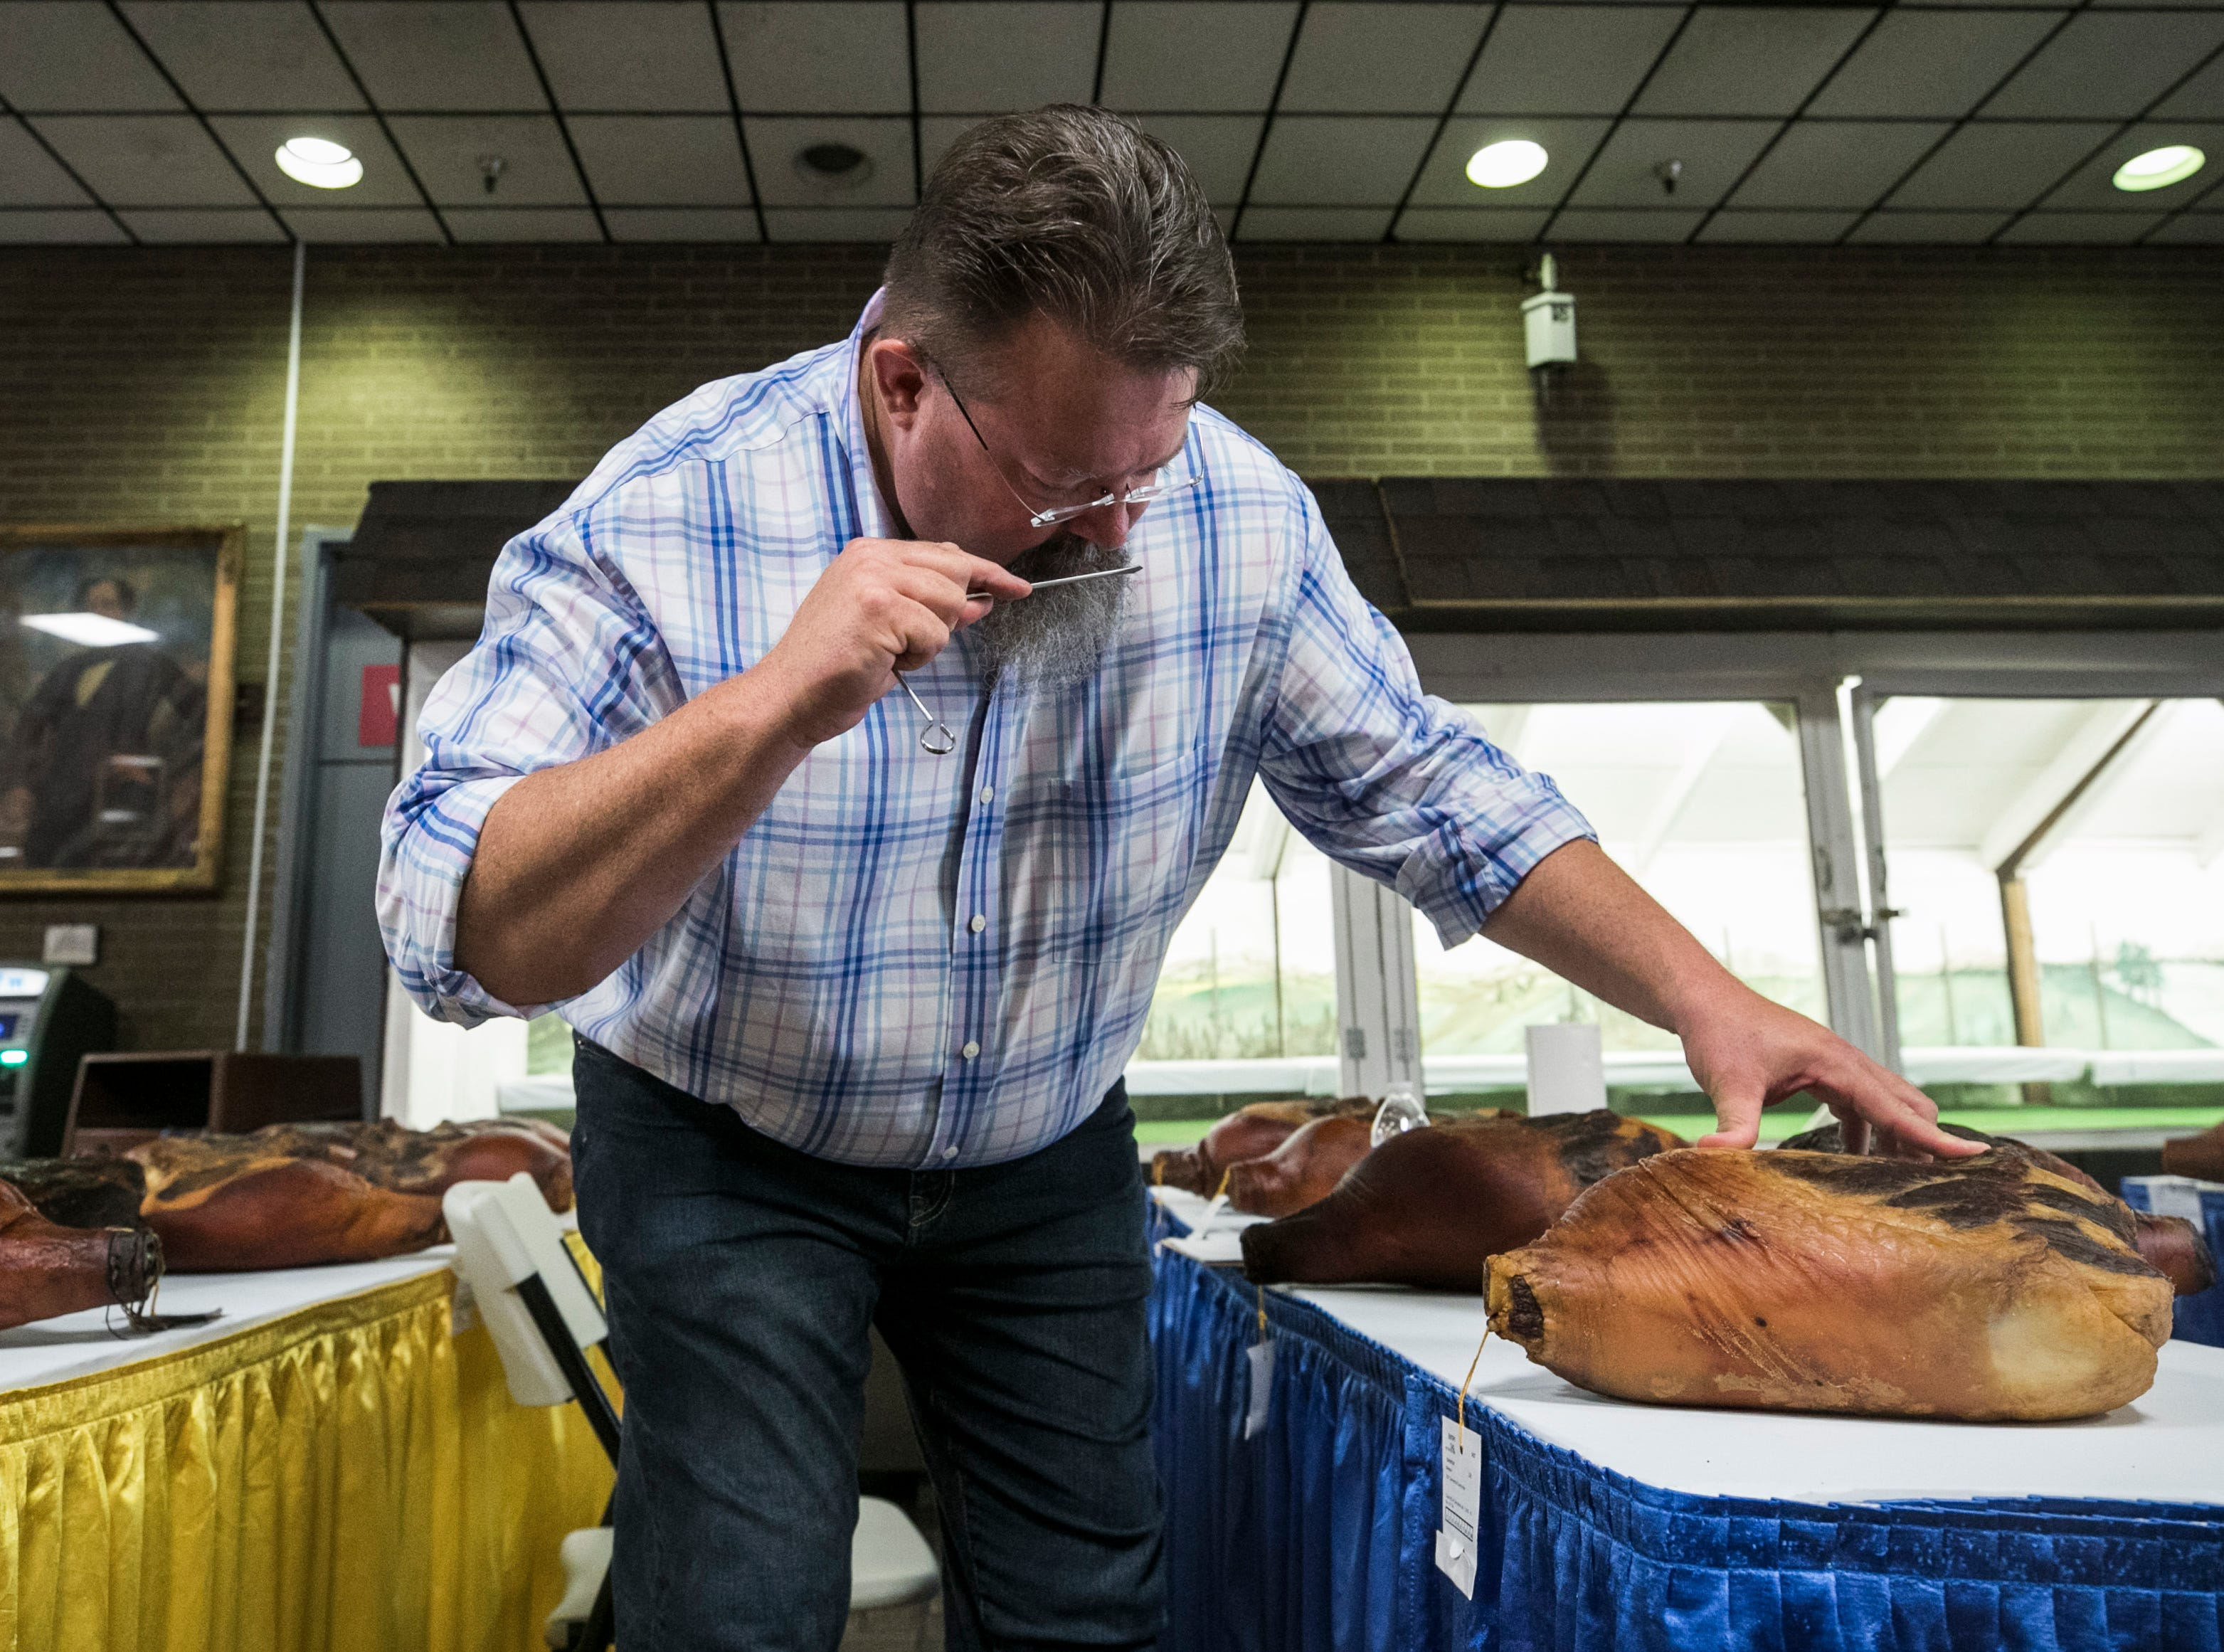 Associate professor Dana Hanson of North Carolina State University judges the country hams on the first day of the Kentucky State Fair. Hanson was looking for a 'meaty' smell when he probes the ham in two places, making sure it doesn't smell sour or rancid. He's also looking for a tan color, but not too light or 'charcoal' from smoking. The top ham will be auctioned off at the Country Ham Breakfast later.